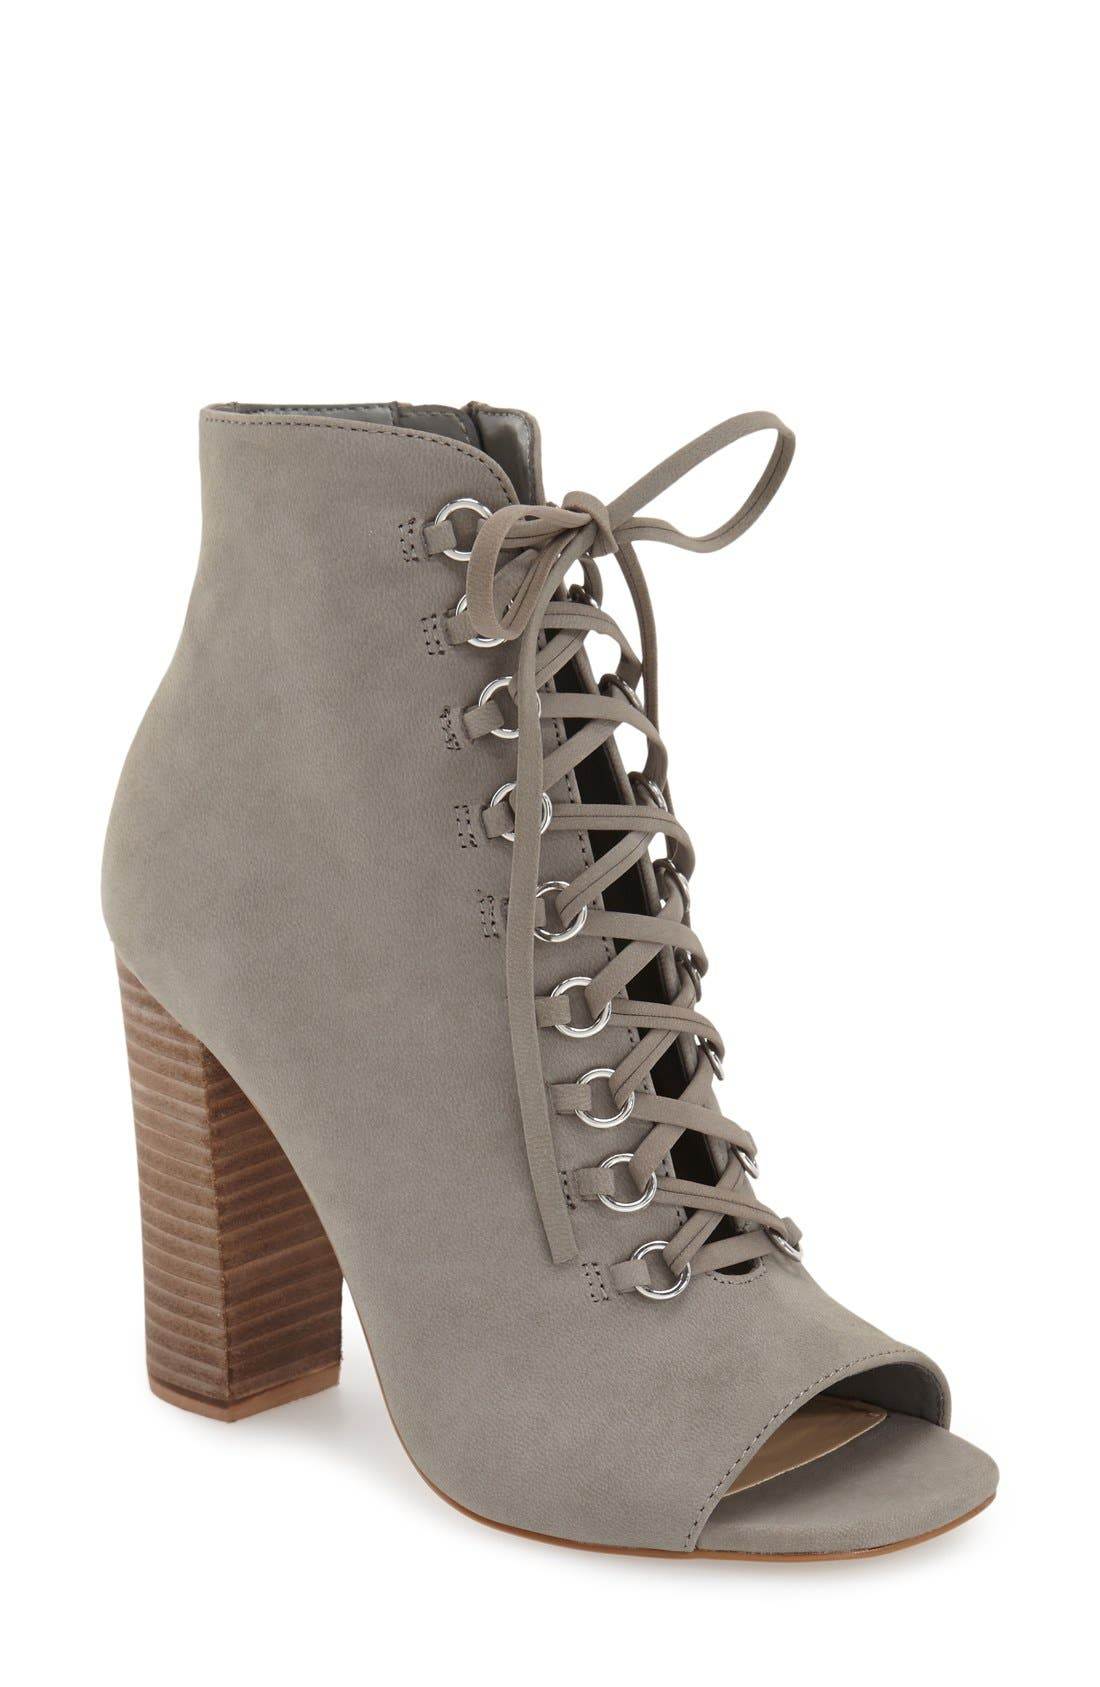 Main Image - Steve Madden 'Freemee' Open Top Lace-Up Bootie (Women)